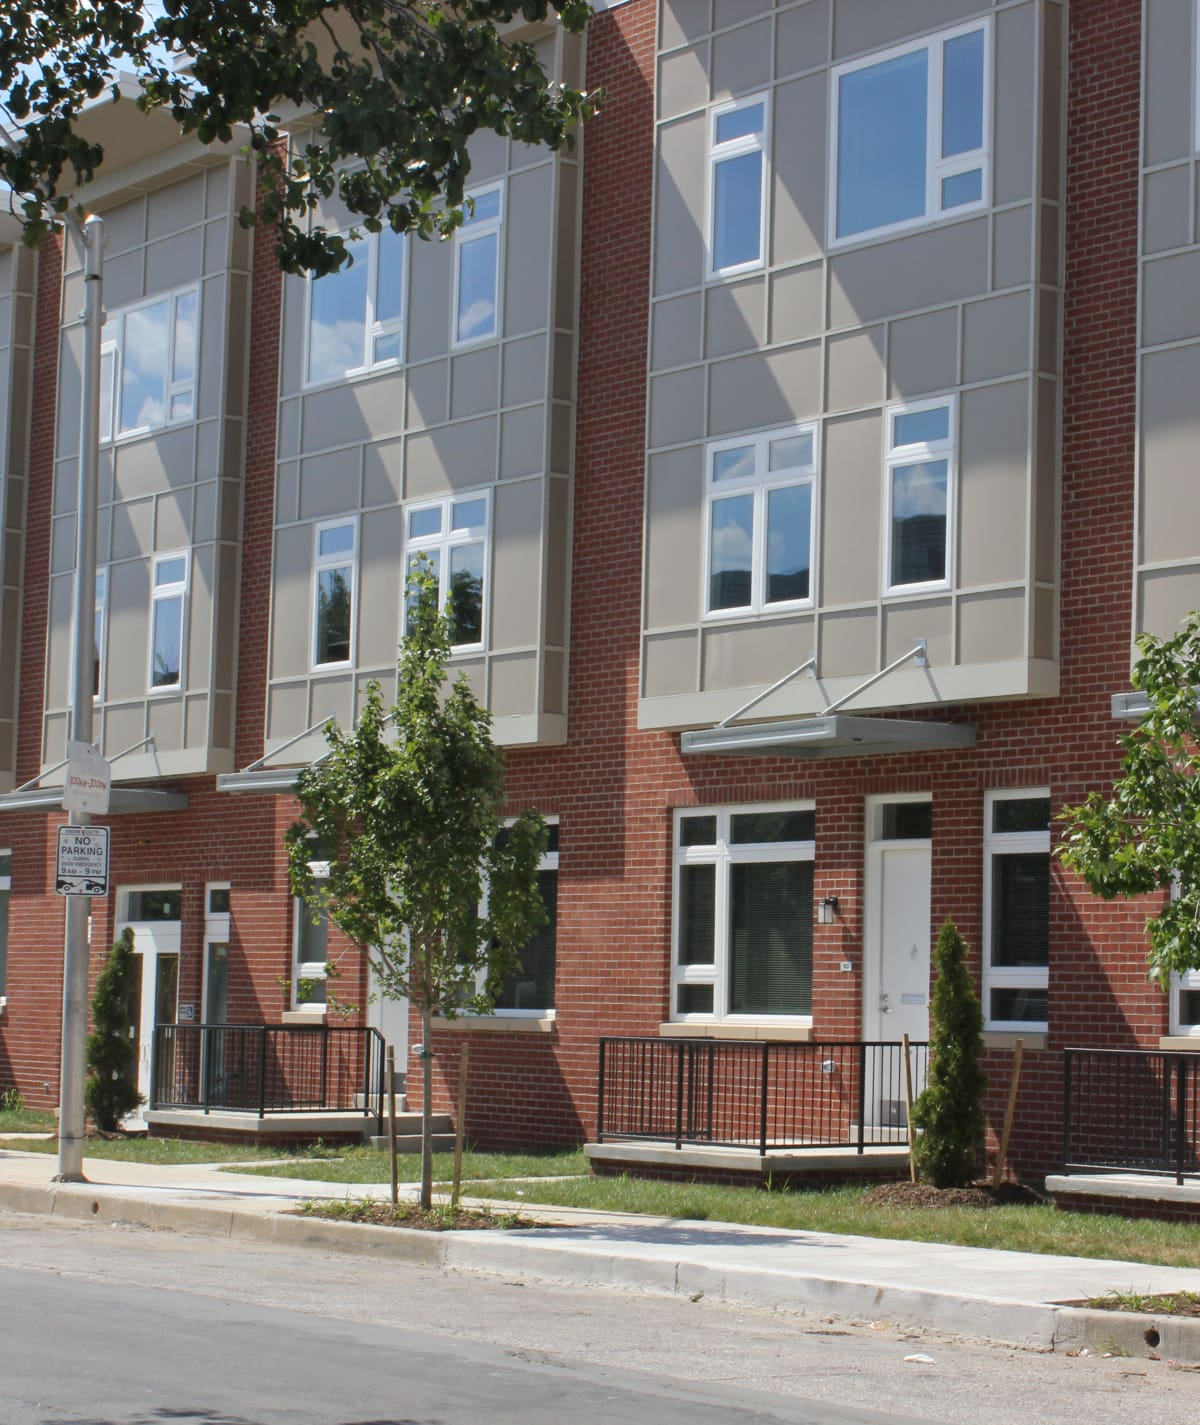 Contact Us at Calloway Row Apartments in Baltimore, Maryland